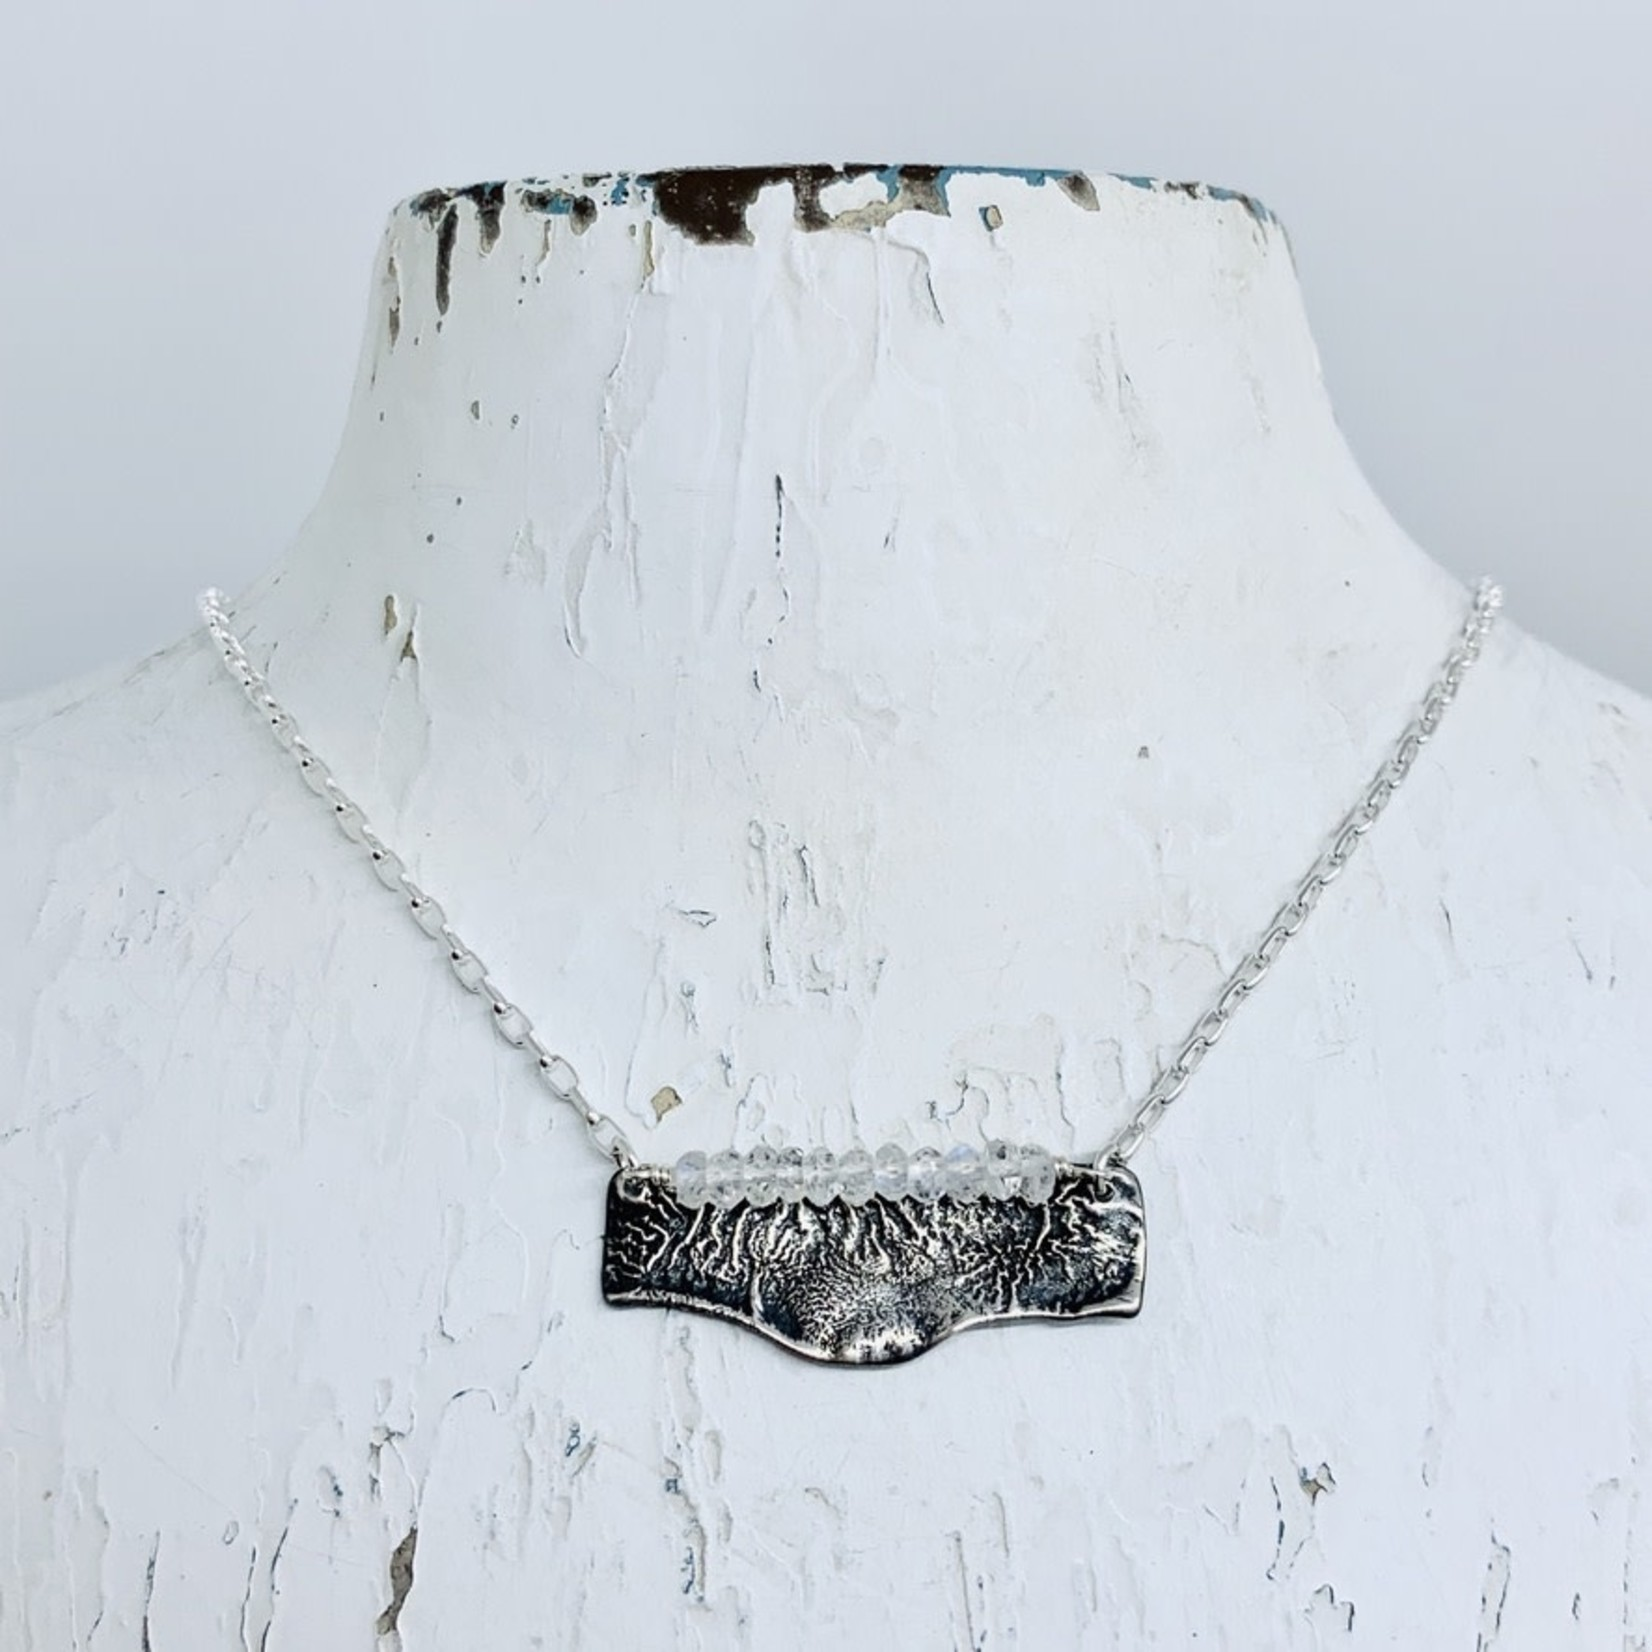 EVANKNOX Handmade Necklace with oxidized reticulated silver, 9 rainbow moonstone across